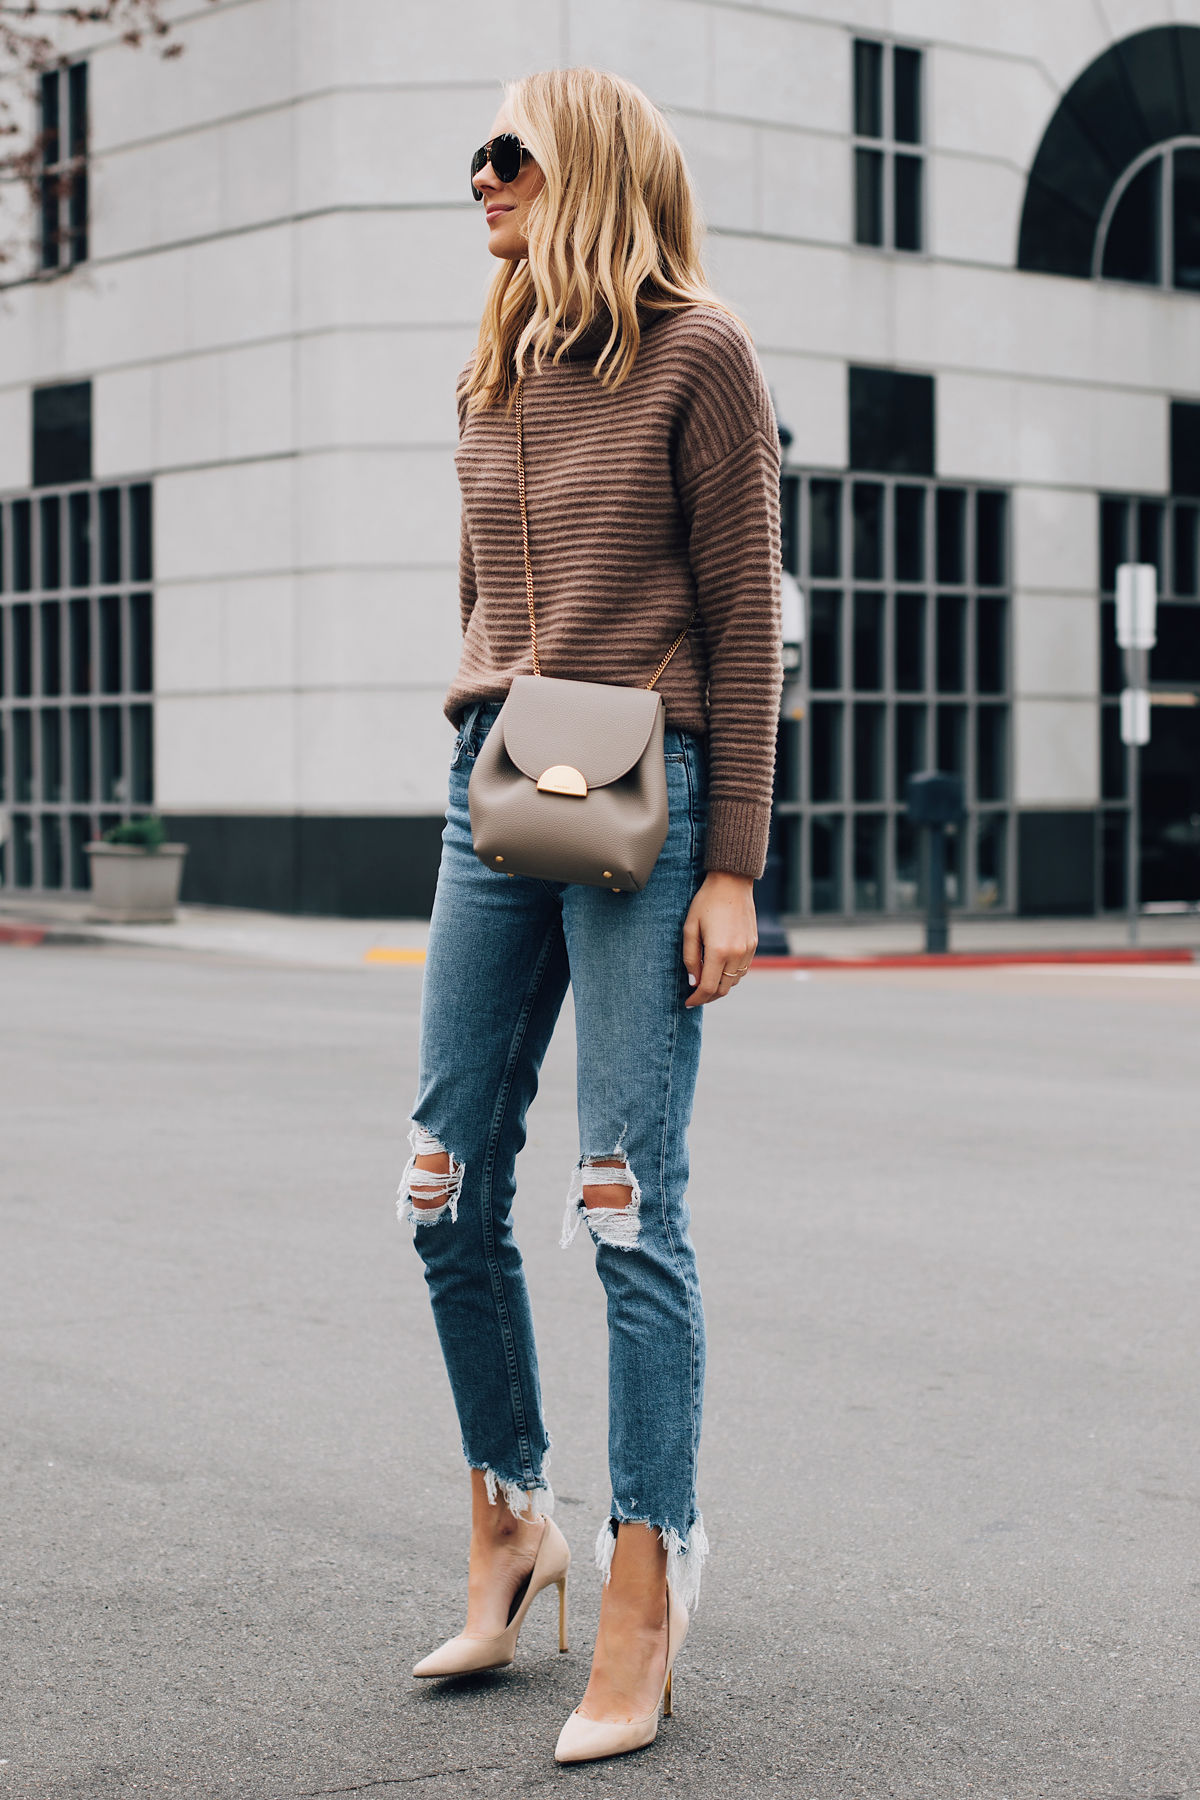 Blonde Woman Wearing Madewell Brown Mock Neck Sweater Paige Ripped Skinny Jeans Nude Pumps Polene Grey Handbag Fashion Jackson San Diego Fashion Blogger Street Style